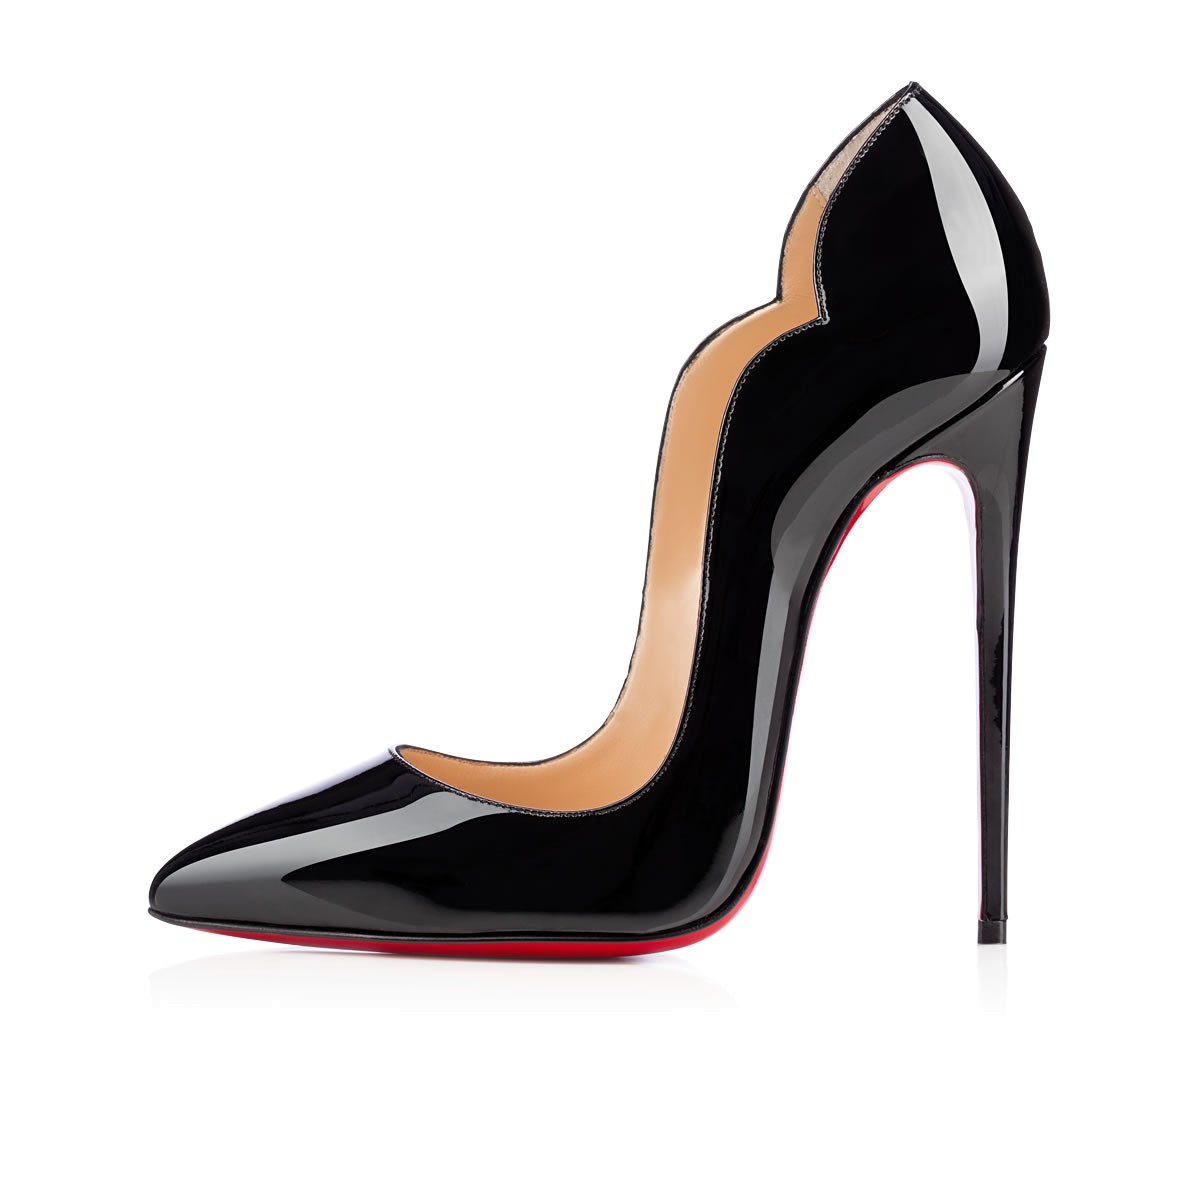 d6142f5a6190 Lyst - Christian Louboutin Hot Chick in Black